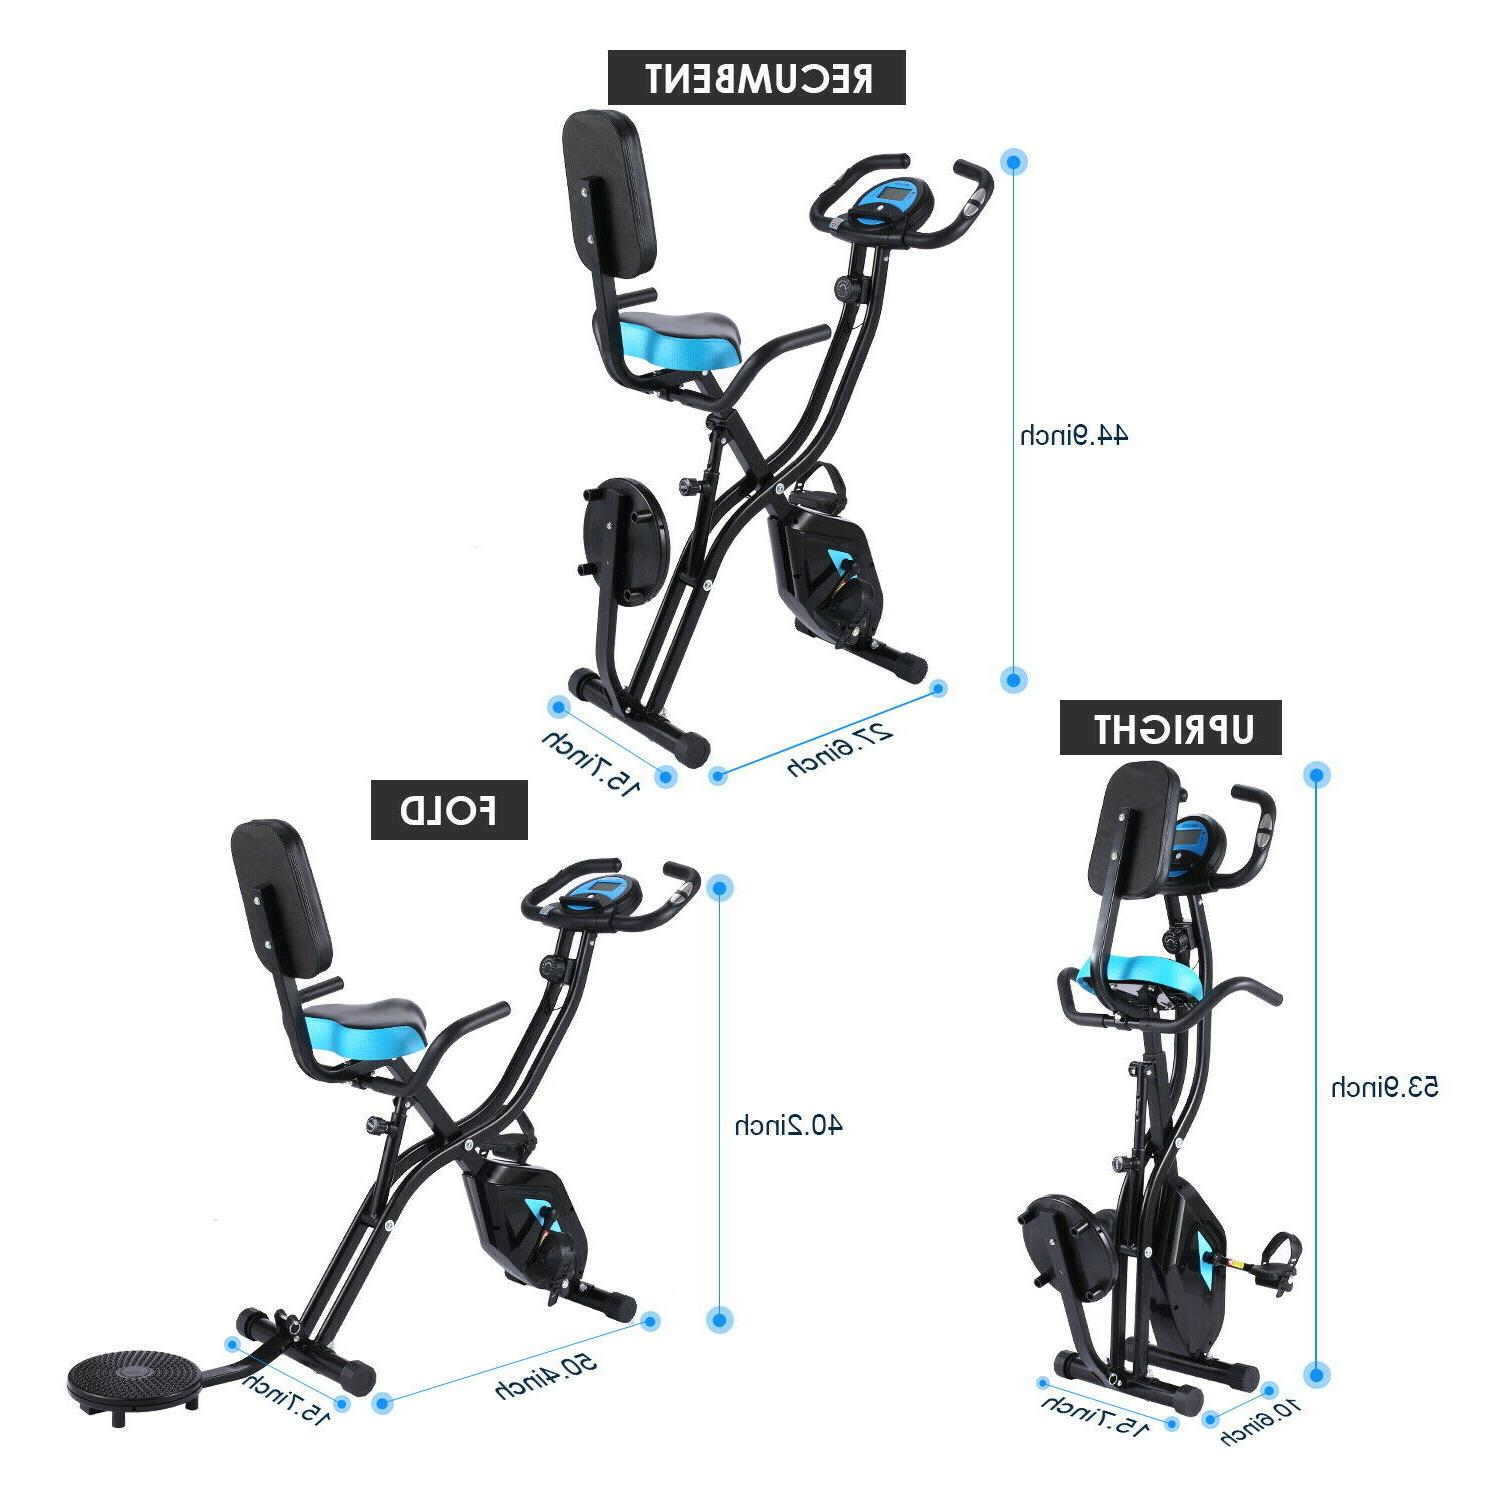 ANCHEER Folding Stationary Indoor Cycling Exercise with LCD